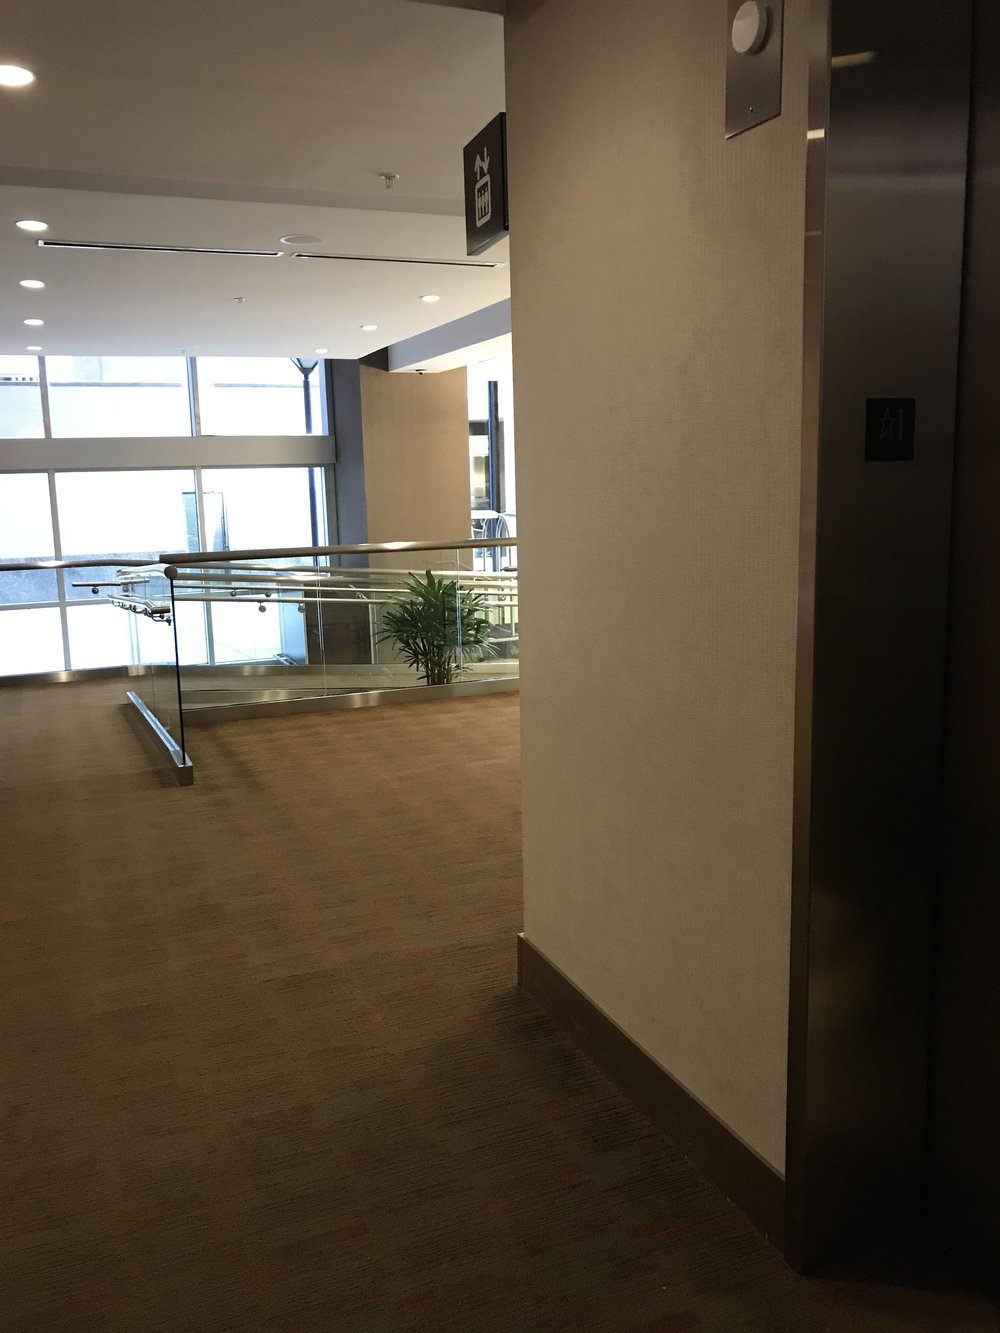 Entry Ramp From Front Door To Elevator